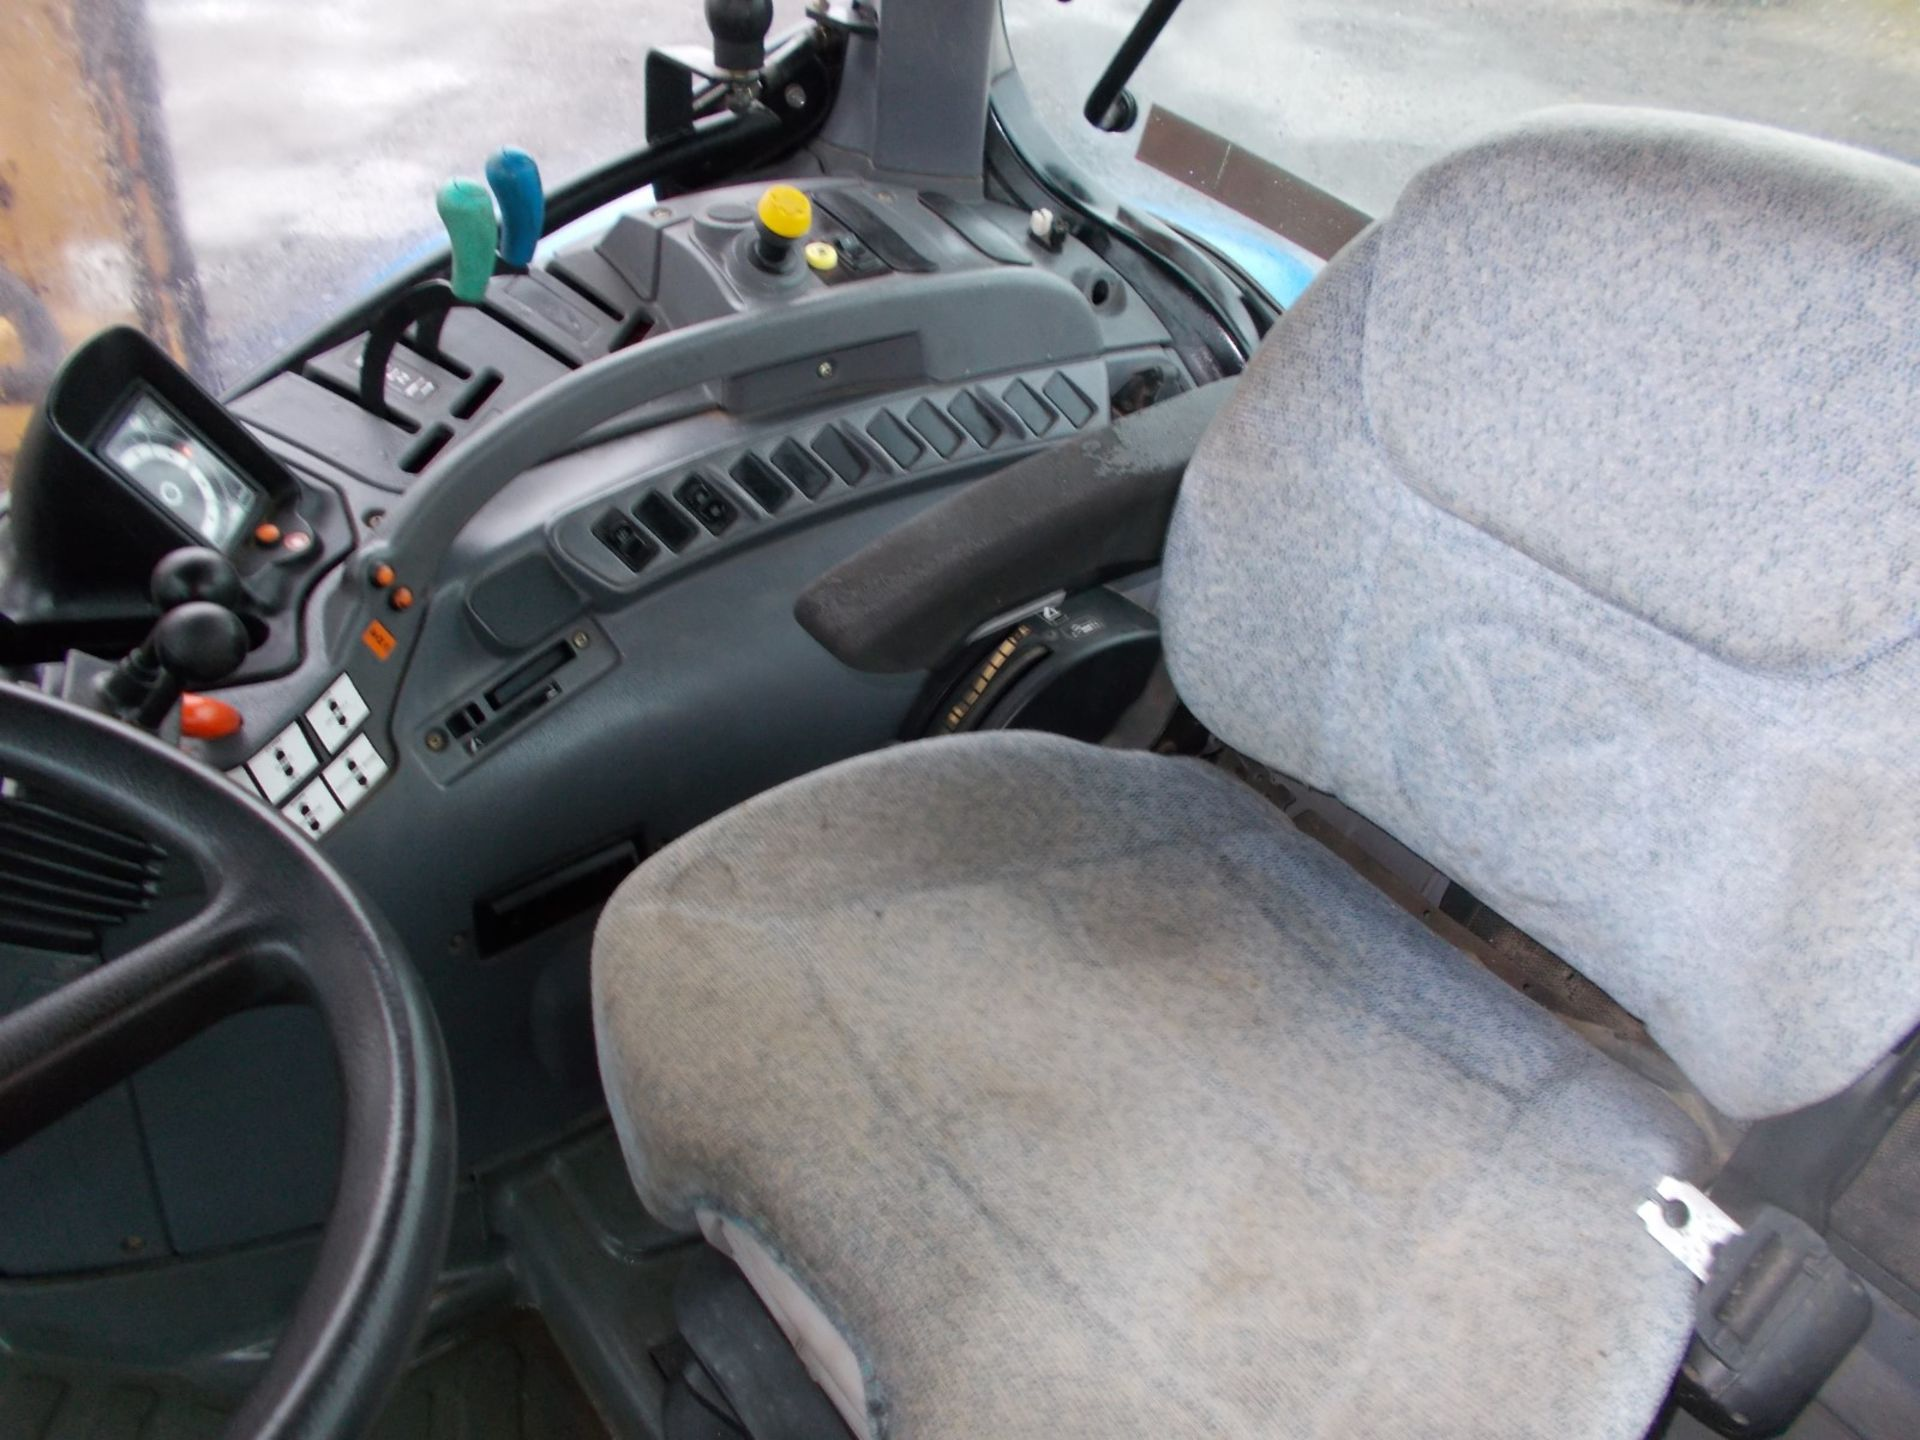 2003 NEW HOLLAND TS100A TRACTOR WITH MOWER ATTACHMENT, 4.5 LITRE 100HP TURBO DIESEL *PLUS VAT* - Image 22 of 24